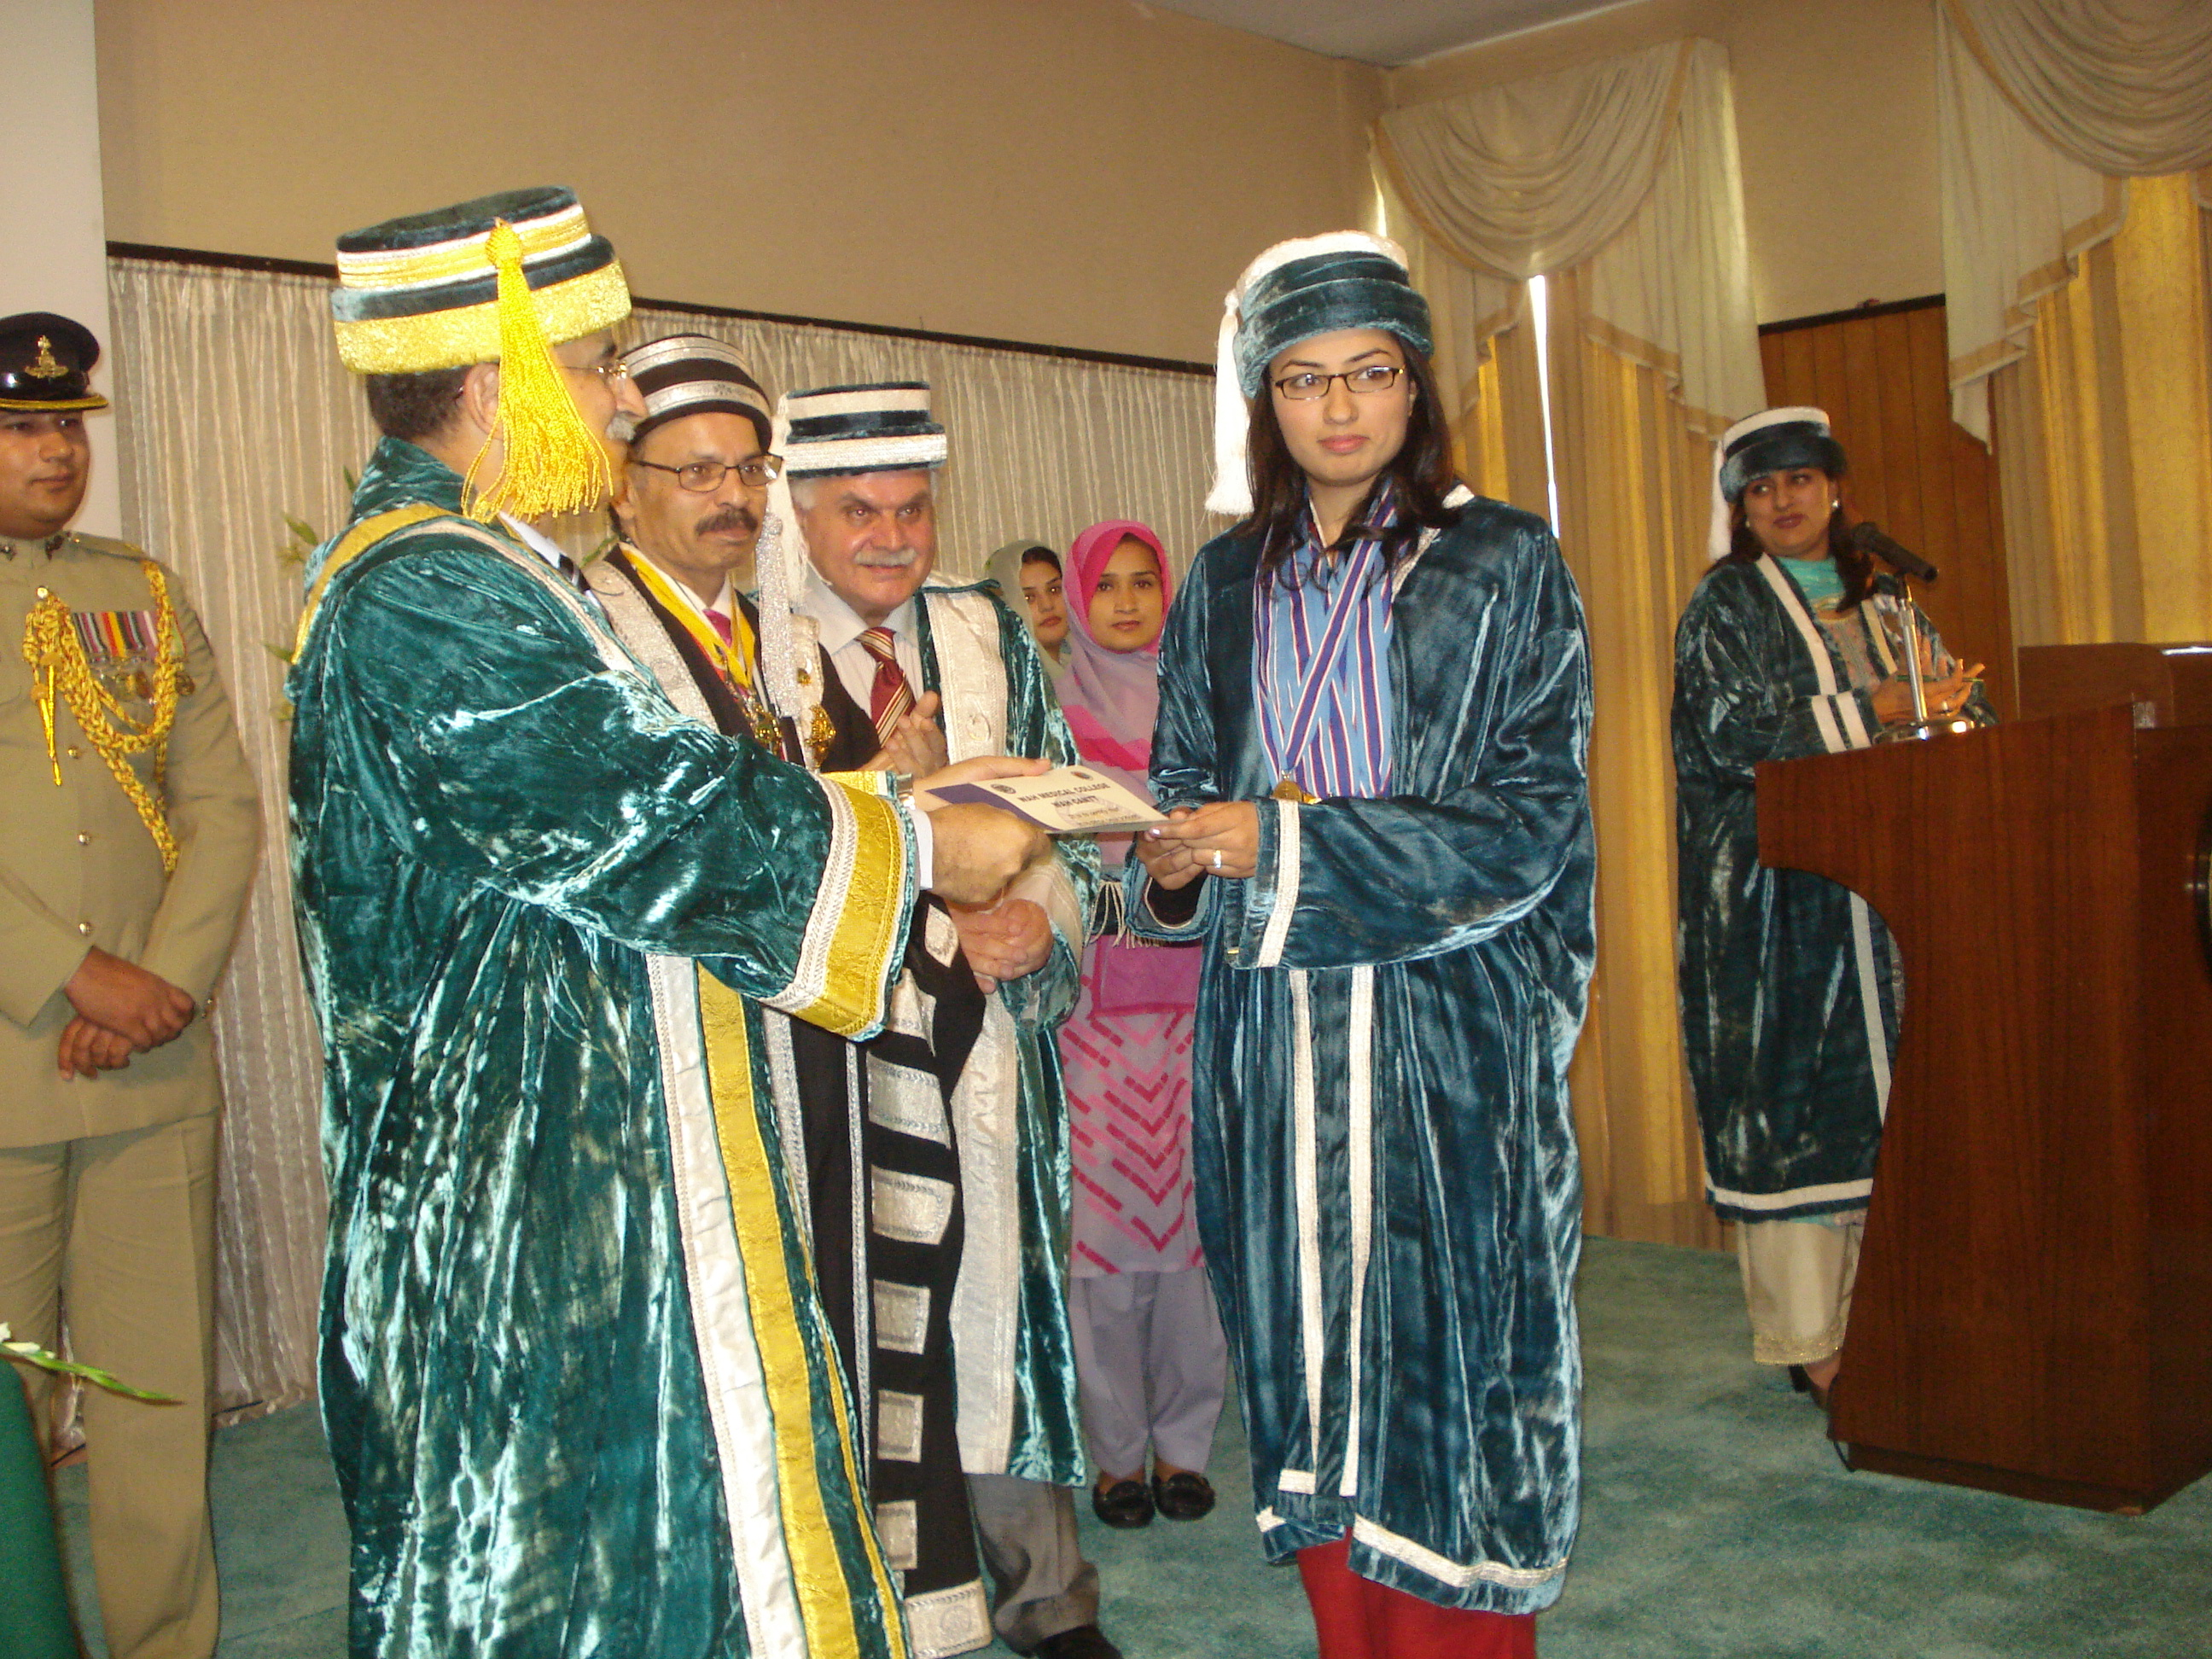 Head of college in a green crushed velvet robe trimmed in yellow and white wearing a yellow and grey fez with a long yellow tassel giving a woman in teal crushed velvet robe trimmed in white and wearing a blue, purple, and white scarf with a matching fez with a long white tassel accepting a diploma.